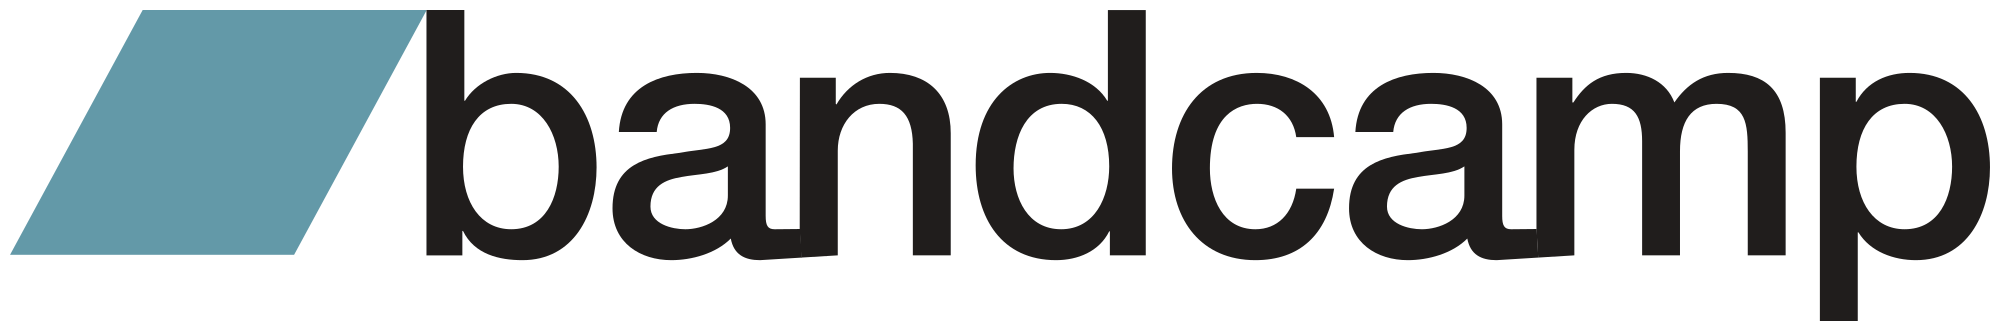 Bandcamp logo png. File svg wikimedia commons